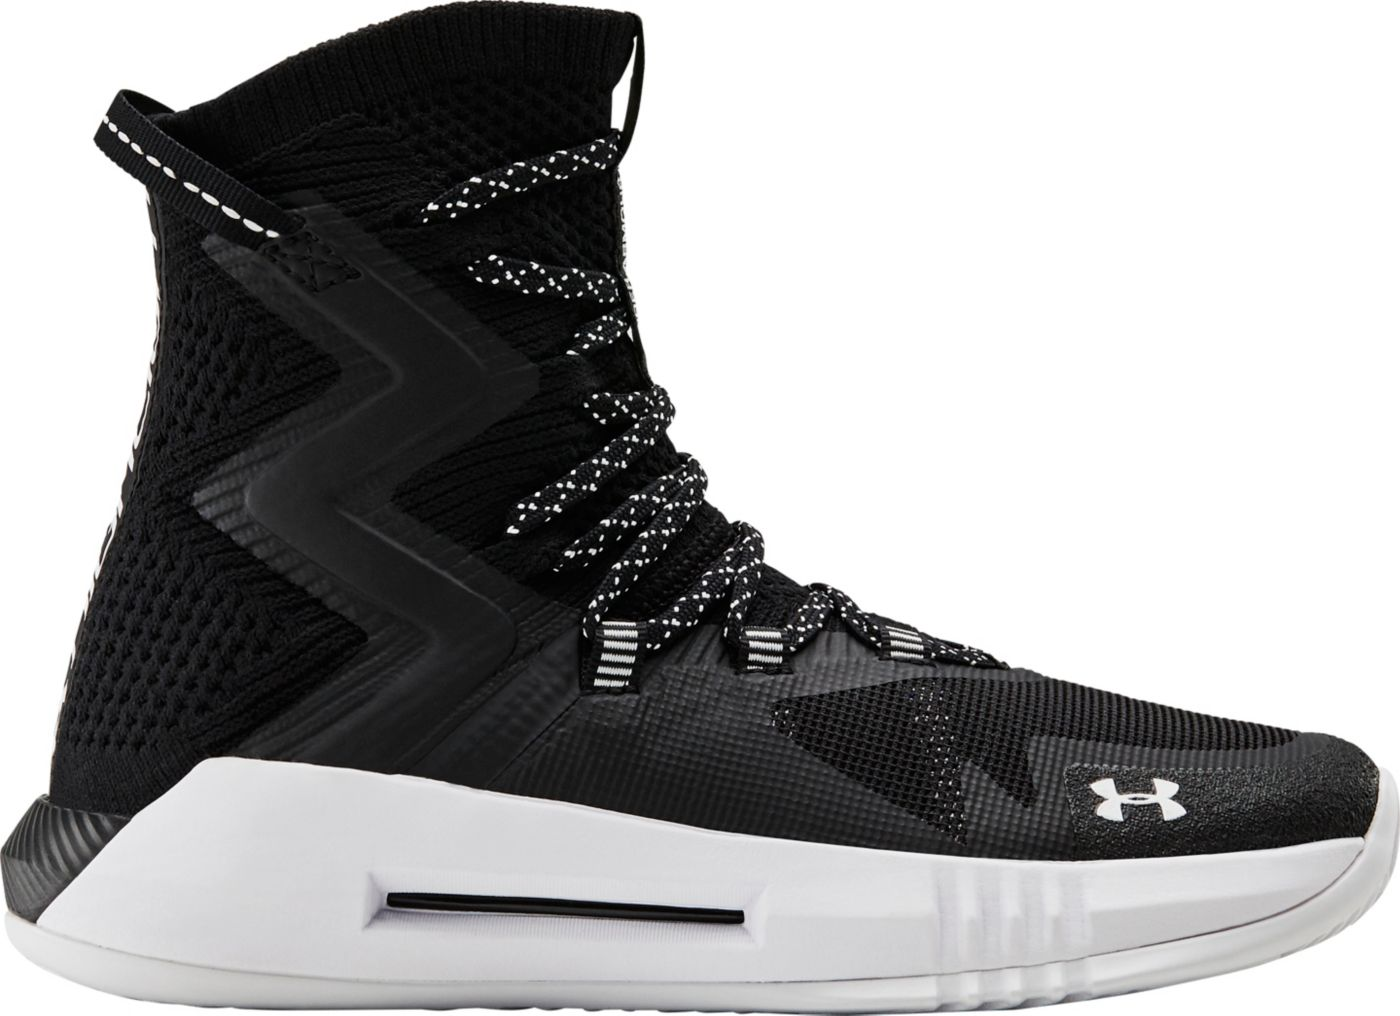 Under Armour Women's Highlight Ace 2.0 Volleyball Shoes